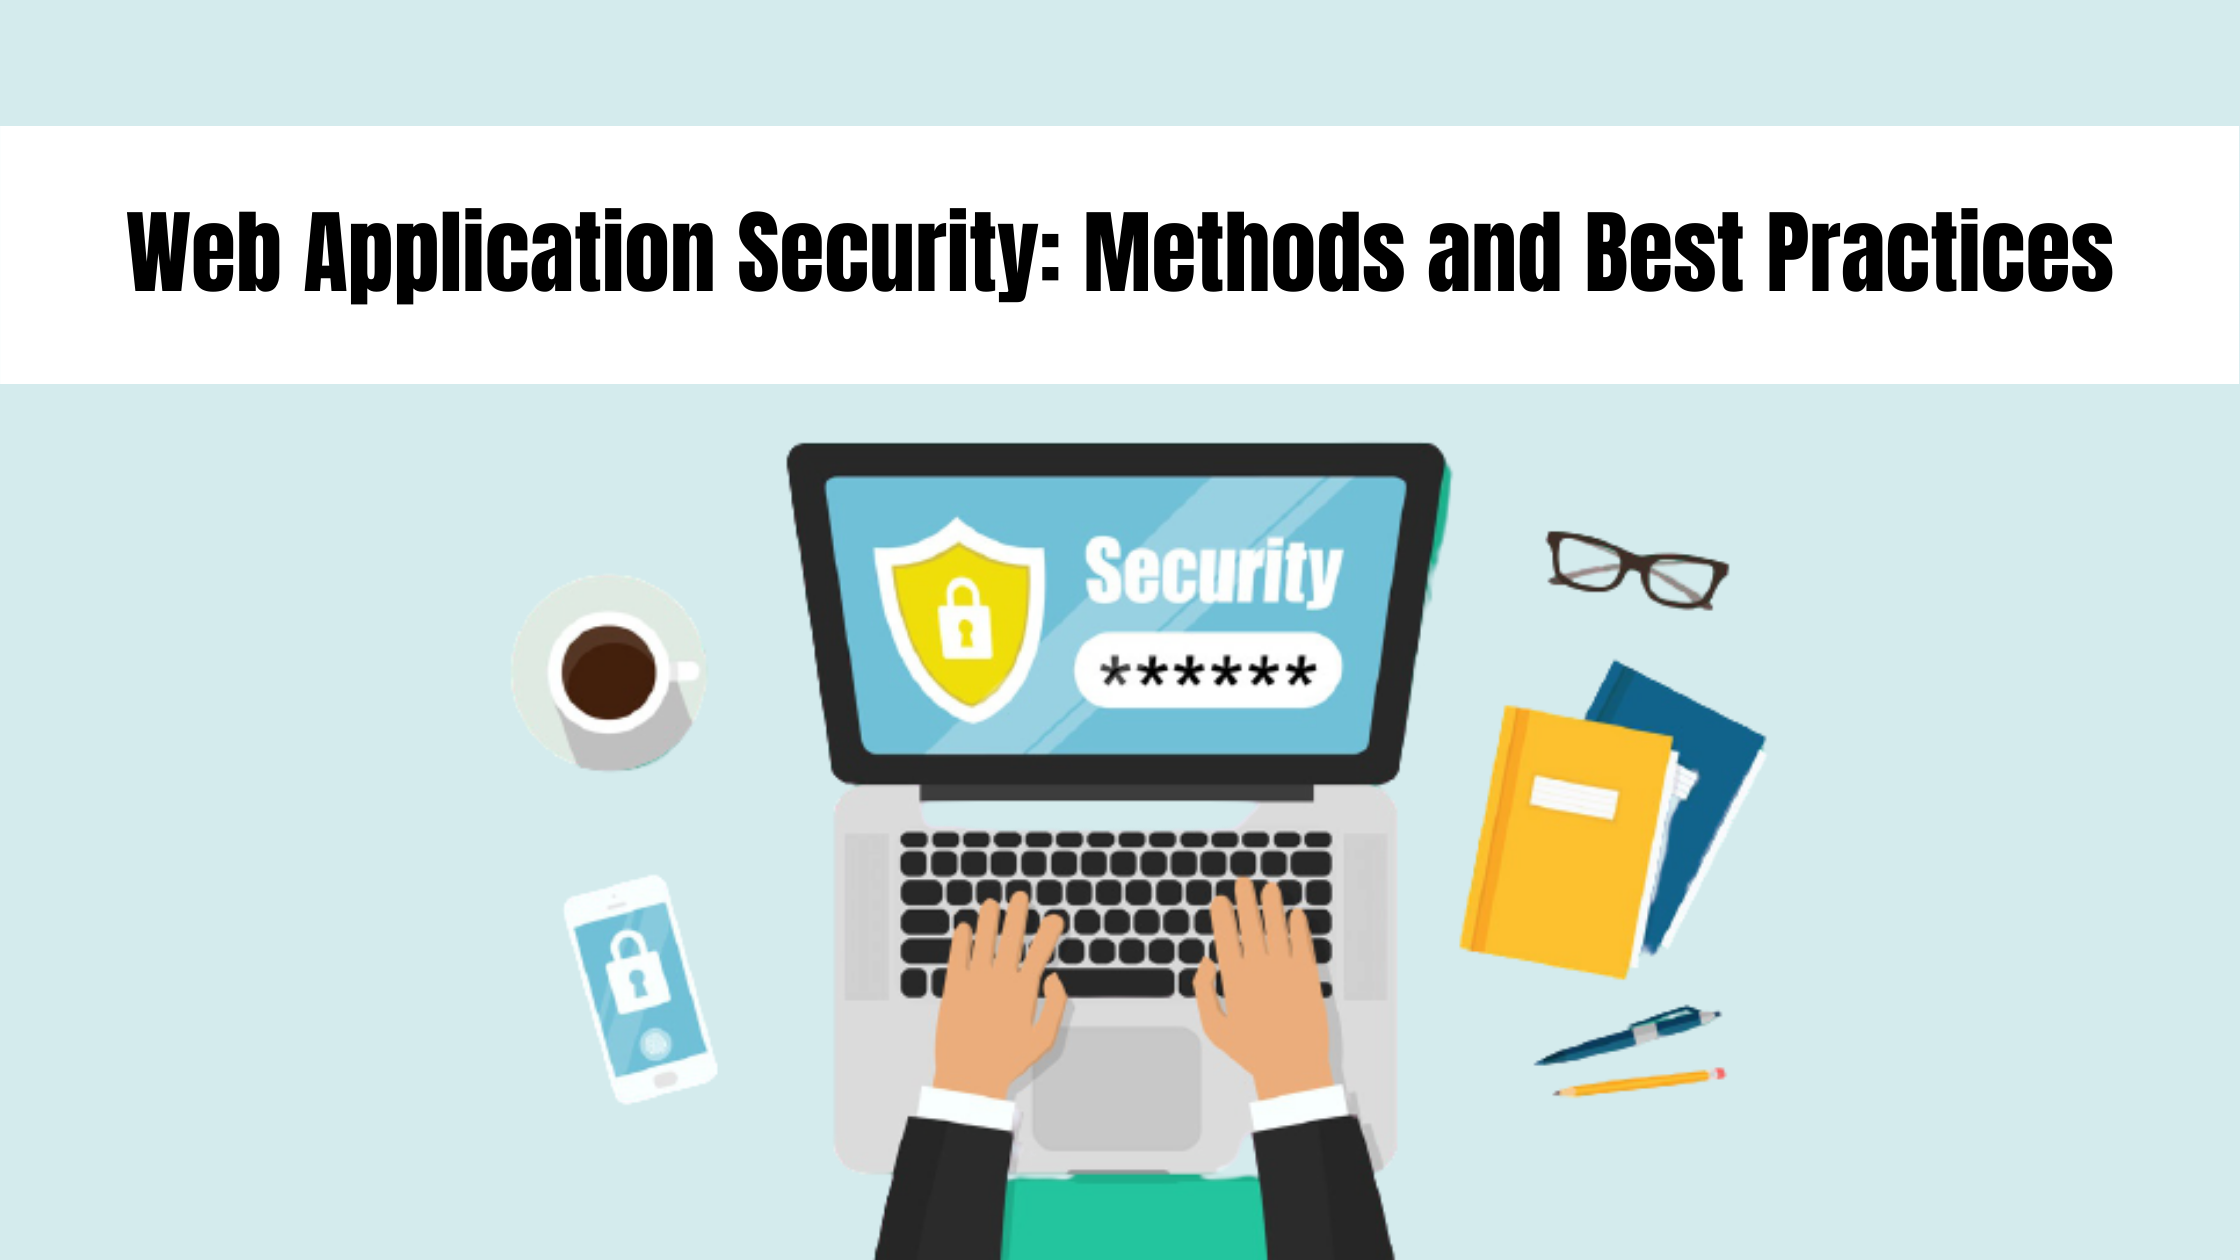 Web Application Security: Methods and Best Practices